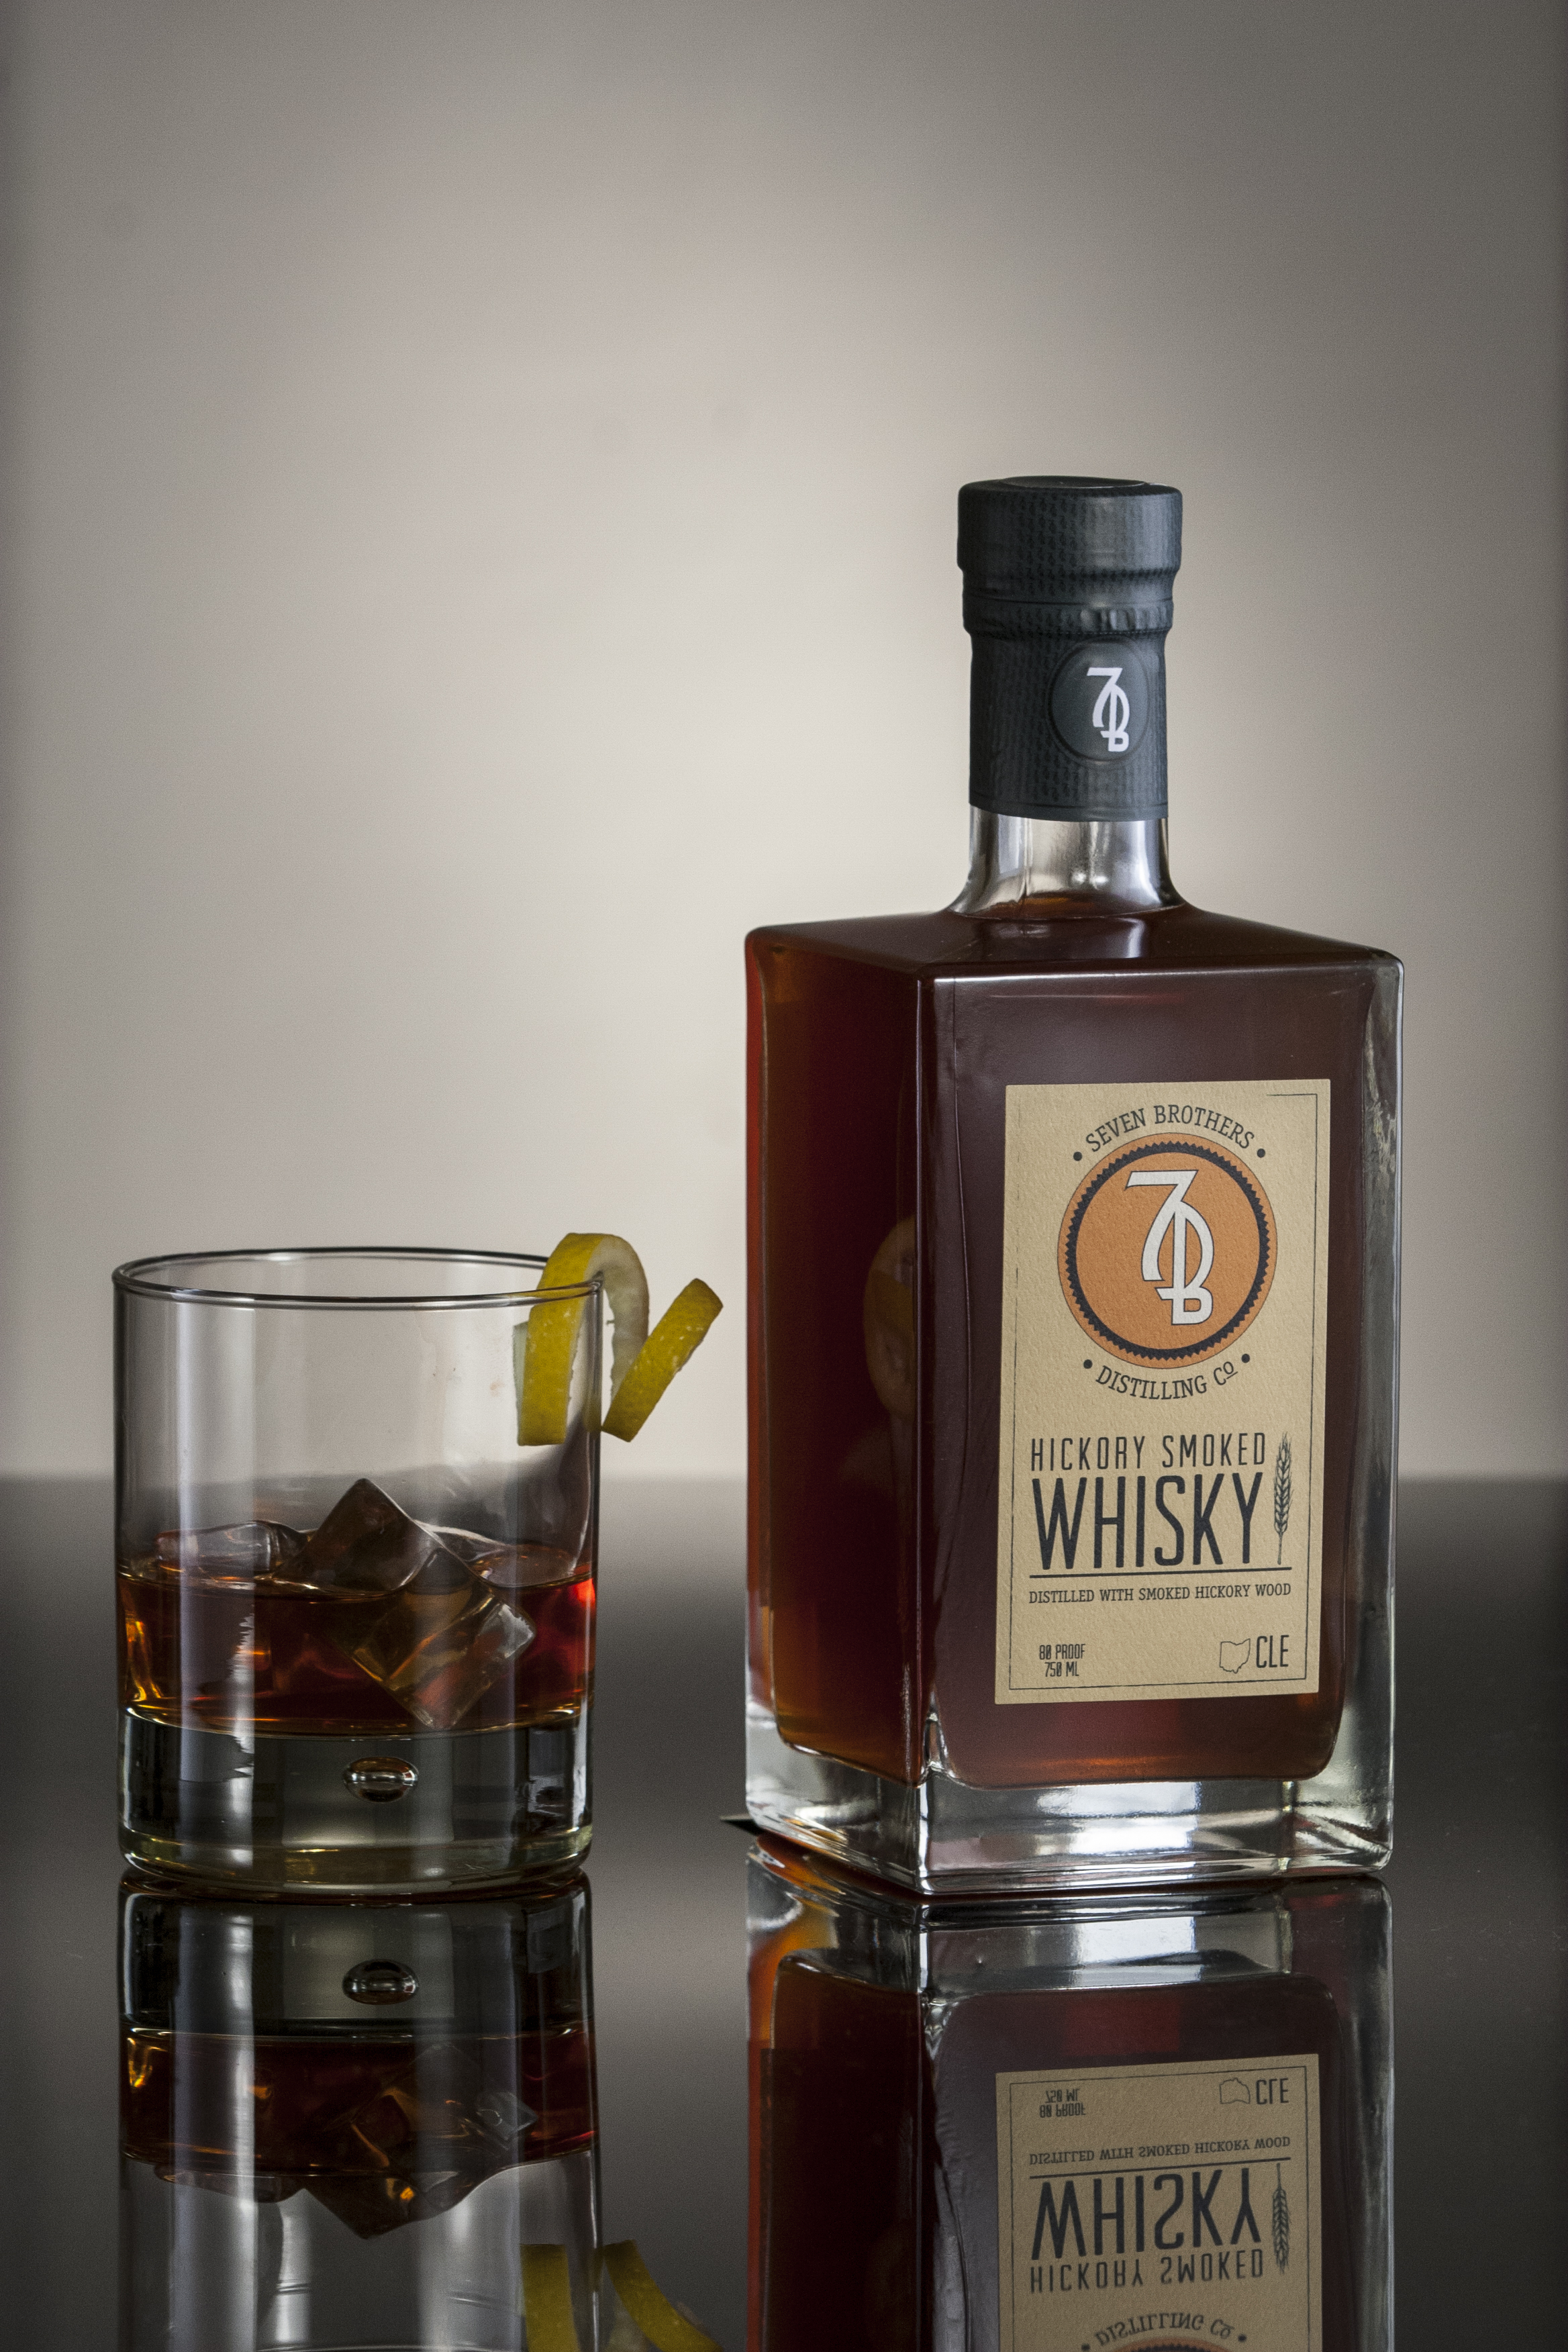 SMOKED OLD FASHIONED - 2 oz Seven Brothers Hickory Smoked Whisky1/4 oz simple syrup2-3 dash Angostura Bitters2-3 dash Orange BittersStir with ice and strain over one large cube into a Rocks glass. Garnish with a lemon twist.